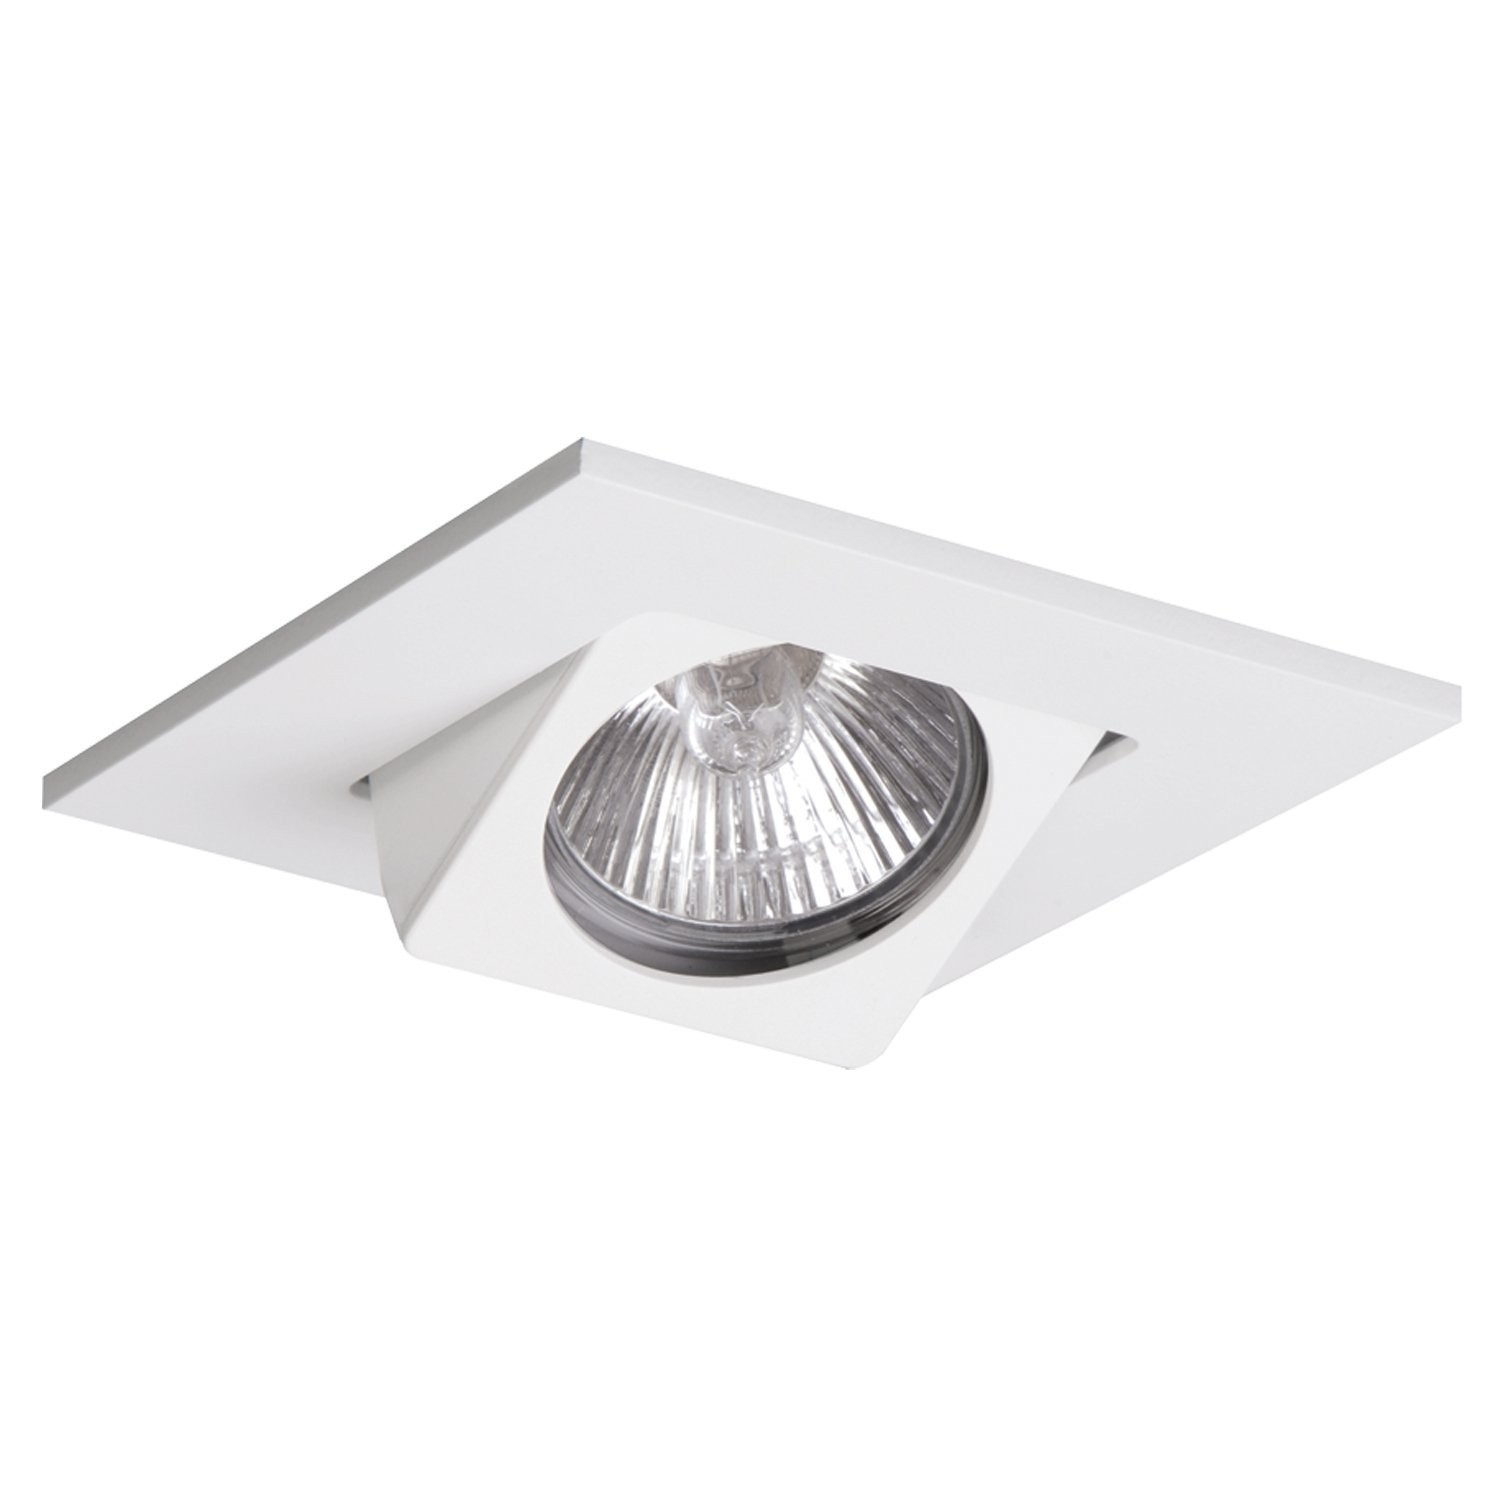 Halo 3013wh recessed lighting trim 3 adjustable gimbal square trim halo 3013wh recessed lighting trim 3 adjustable gimbal square trim white aloadofball Images